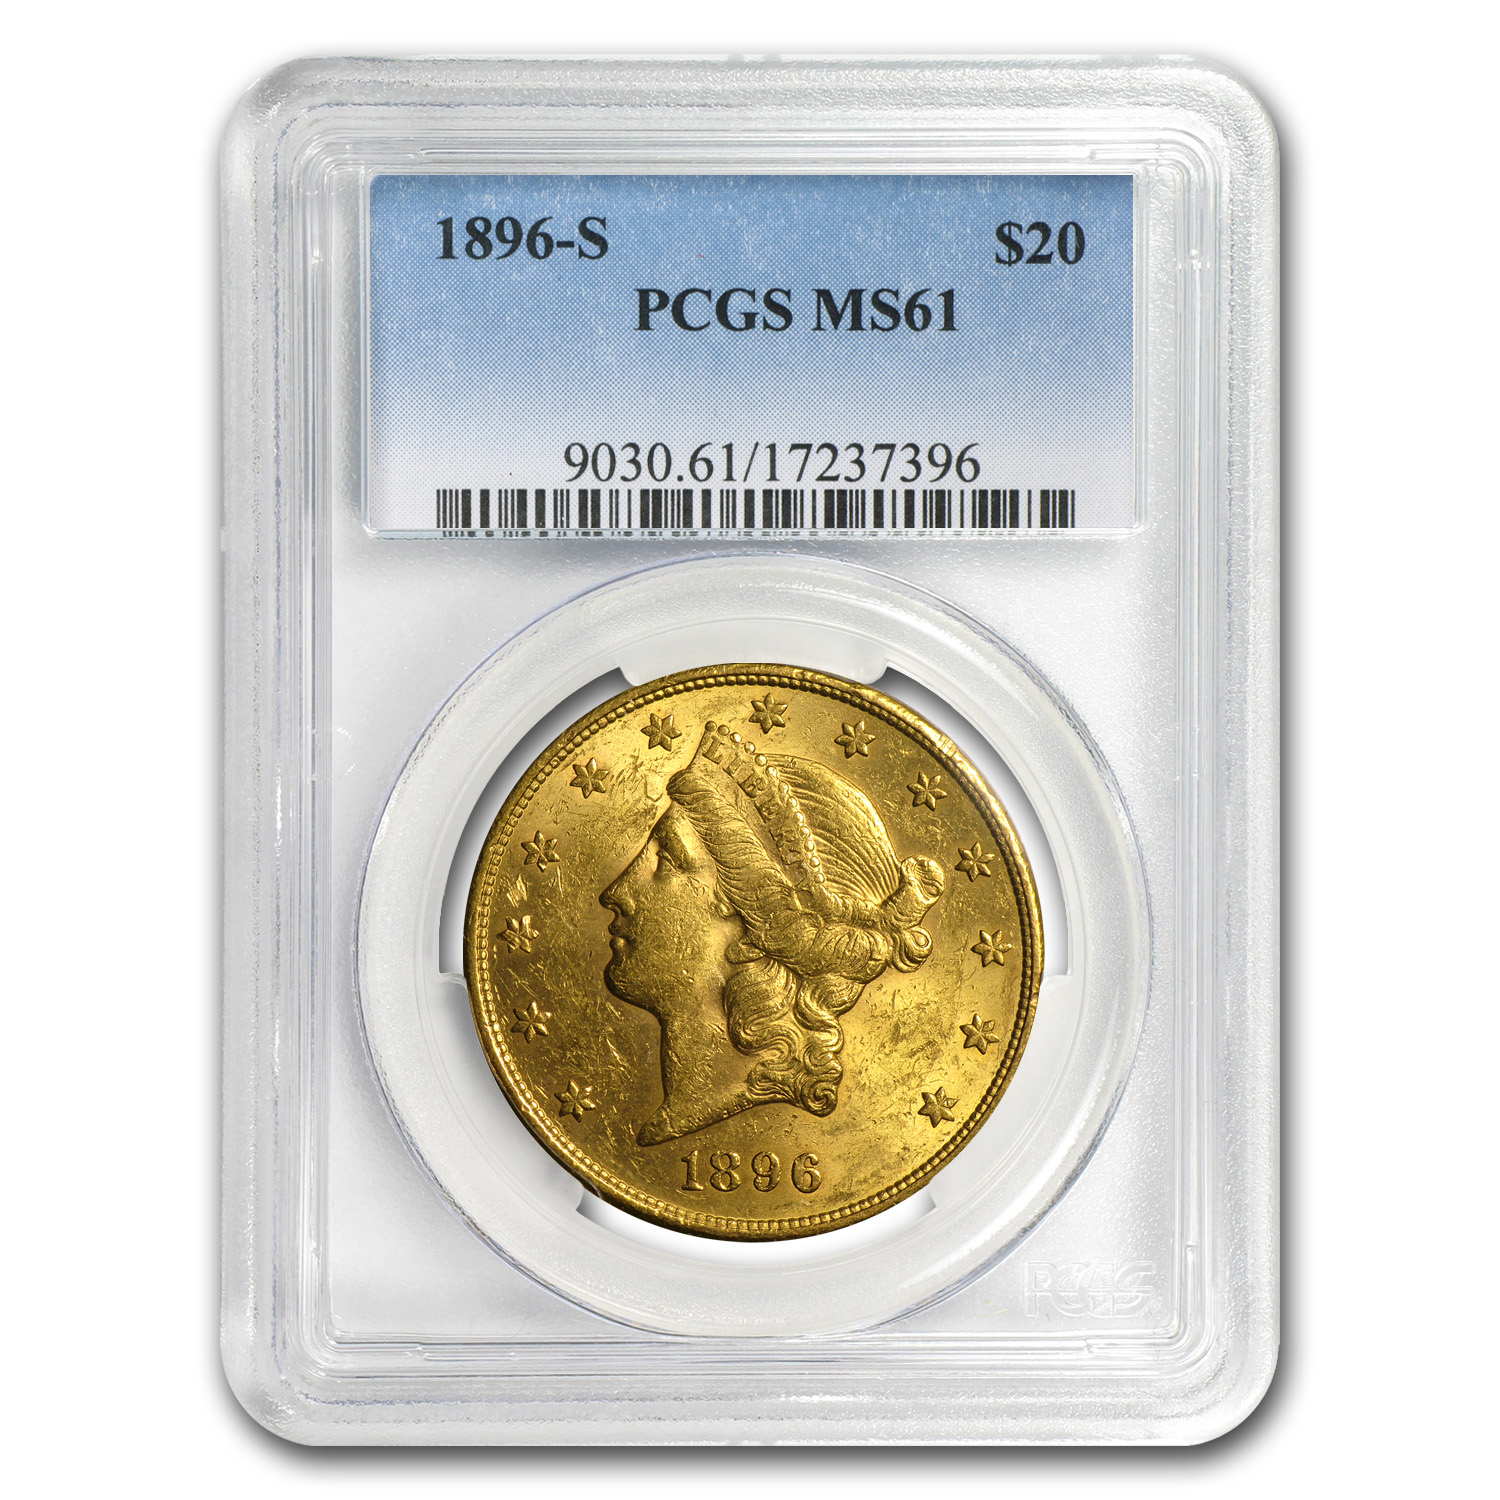 5-Coin $20 Gold Liberty Dble Eagle Set MS-61 PCGS (1800s S-Mint)